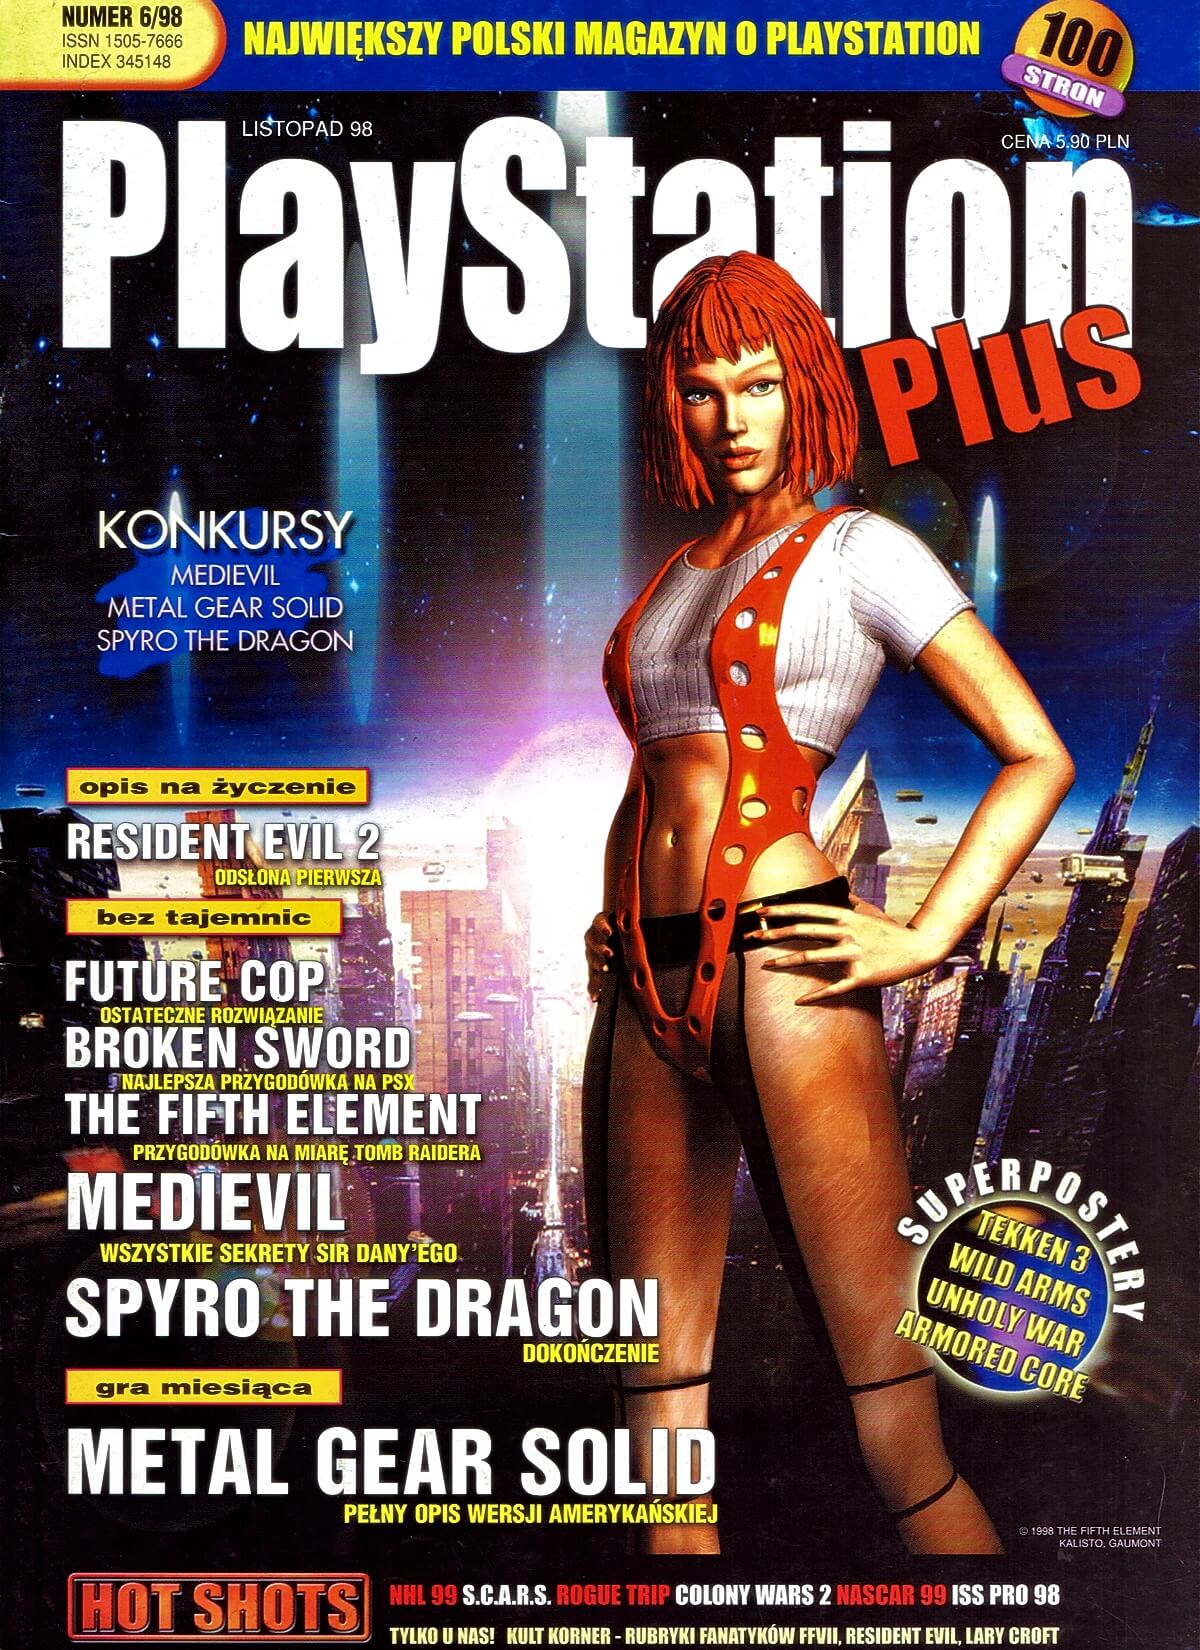 playstation plus magazyn 13 - PlayStation Plus 6/98